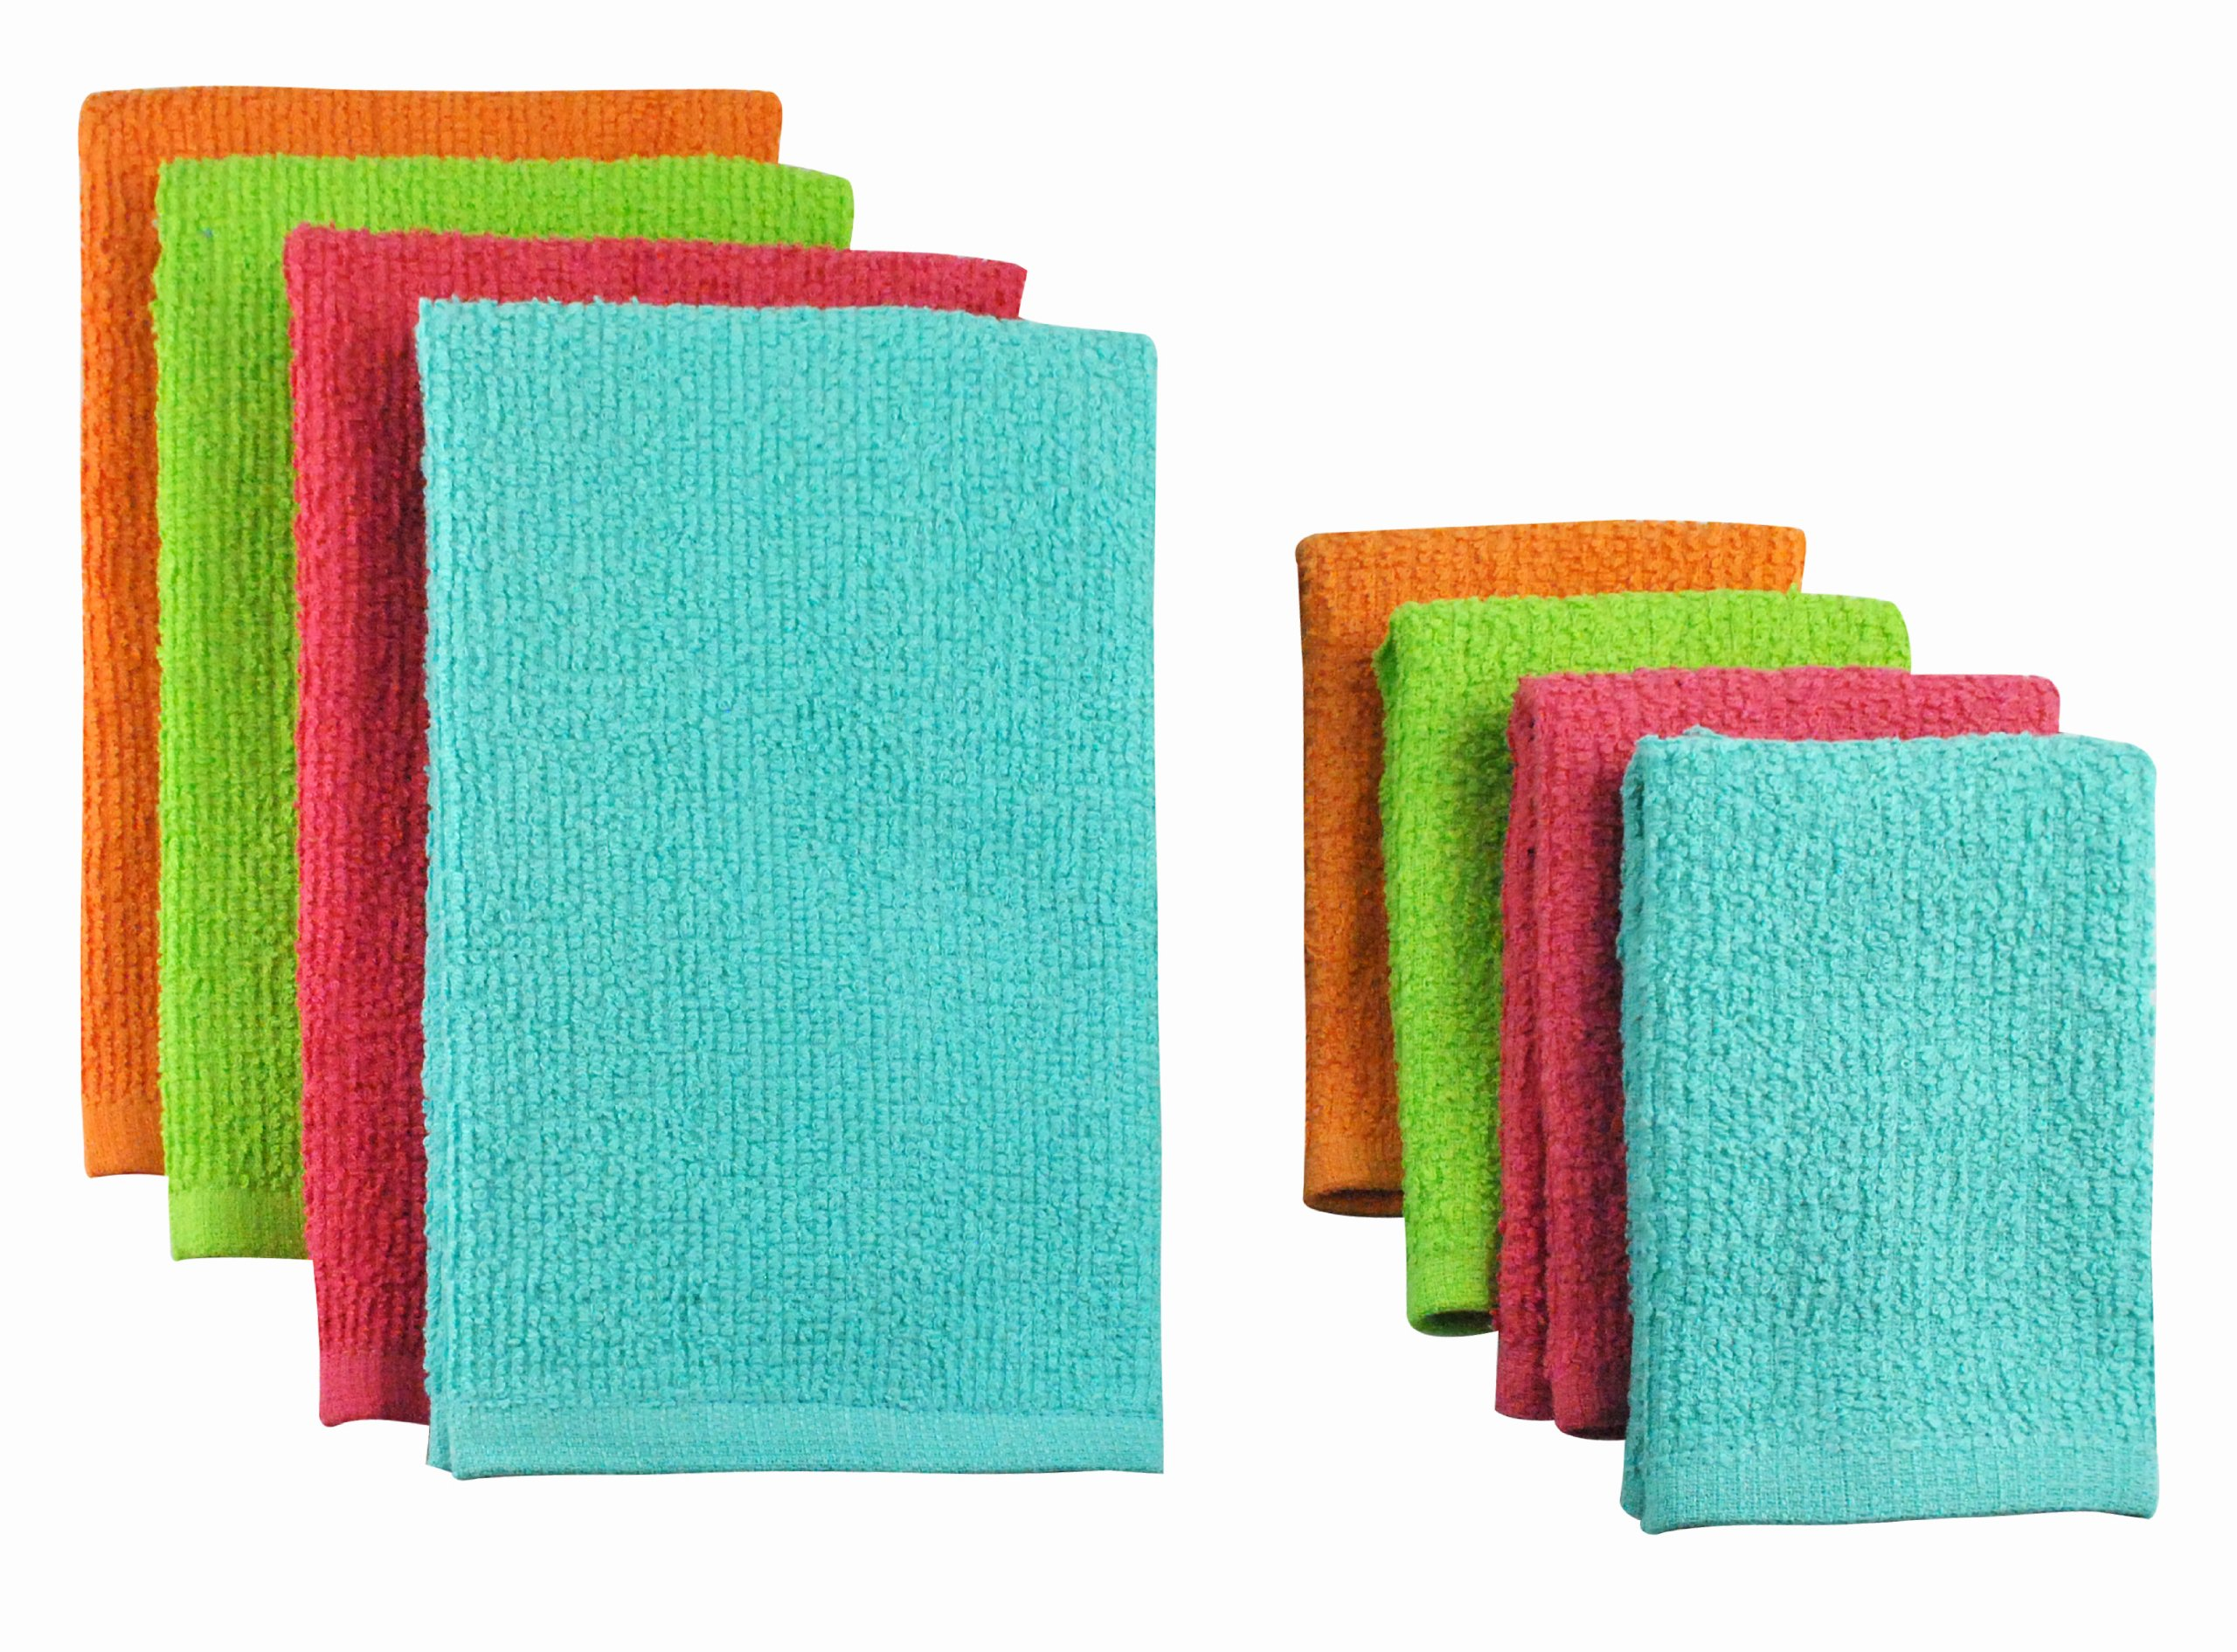 DII COS31272 Cotton Bar Mop Cleaning Set, Machine Washable, Absorbent, Everyday Kitchen Basic and Lint-Free, 16x24/12x12, Bright